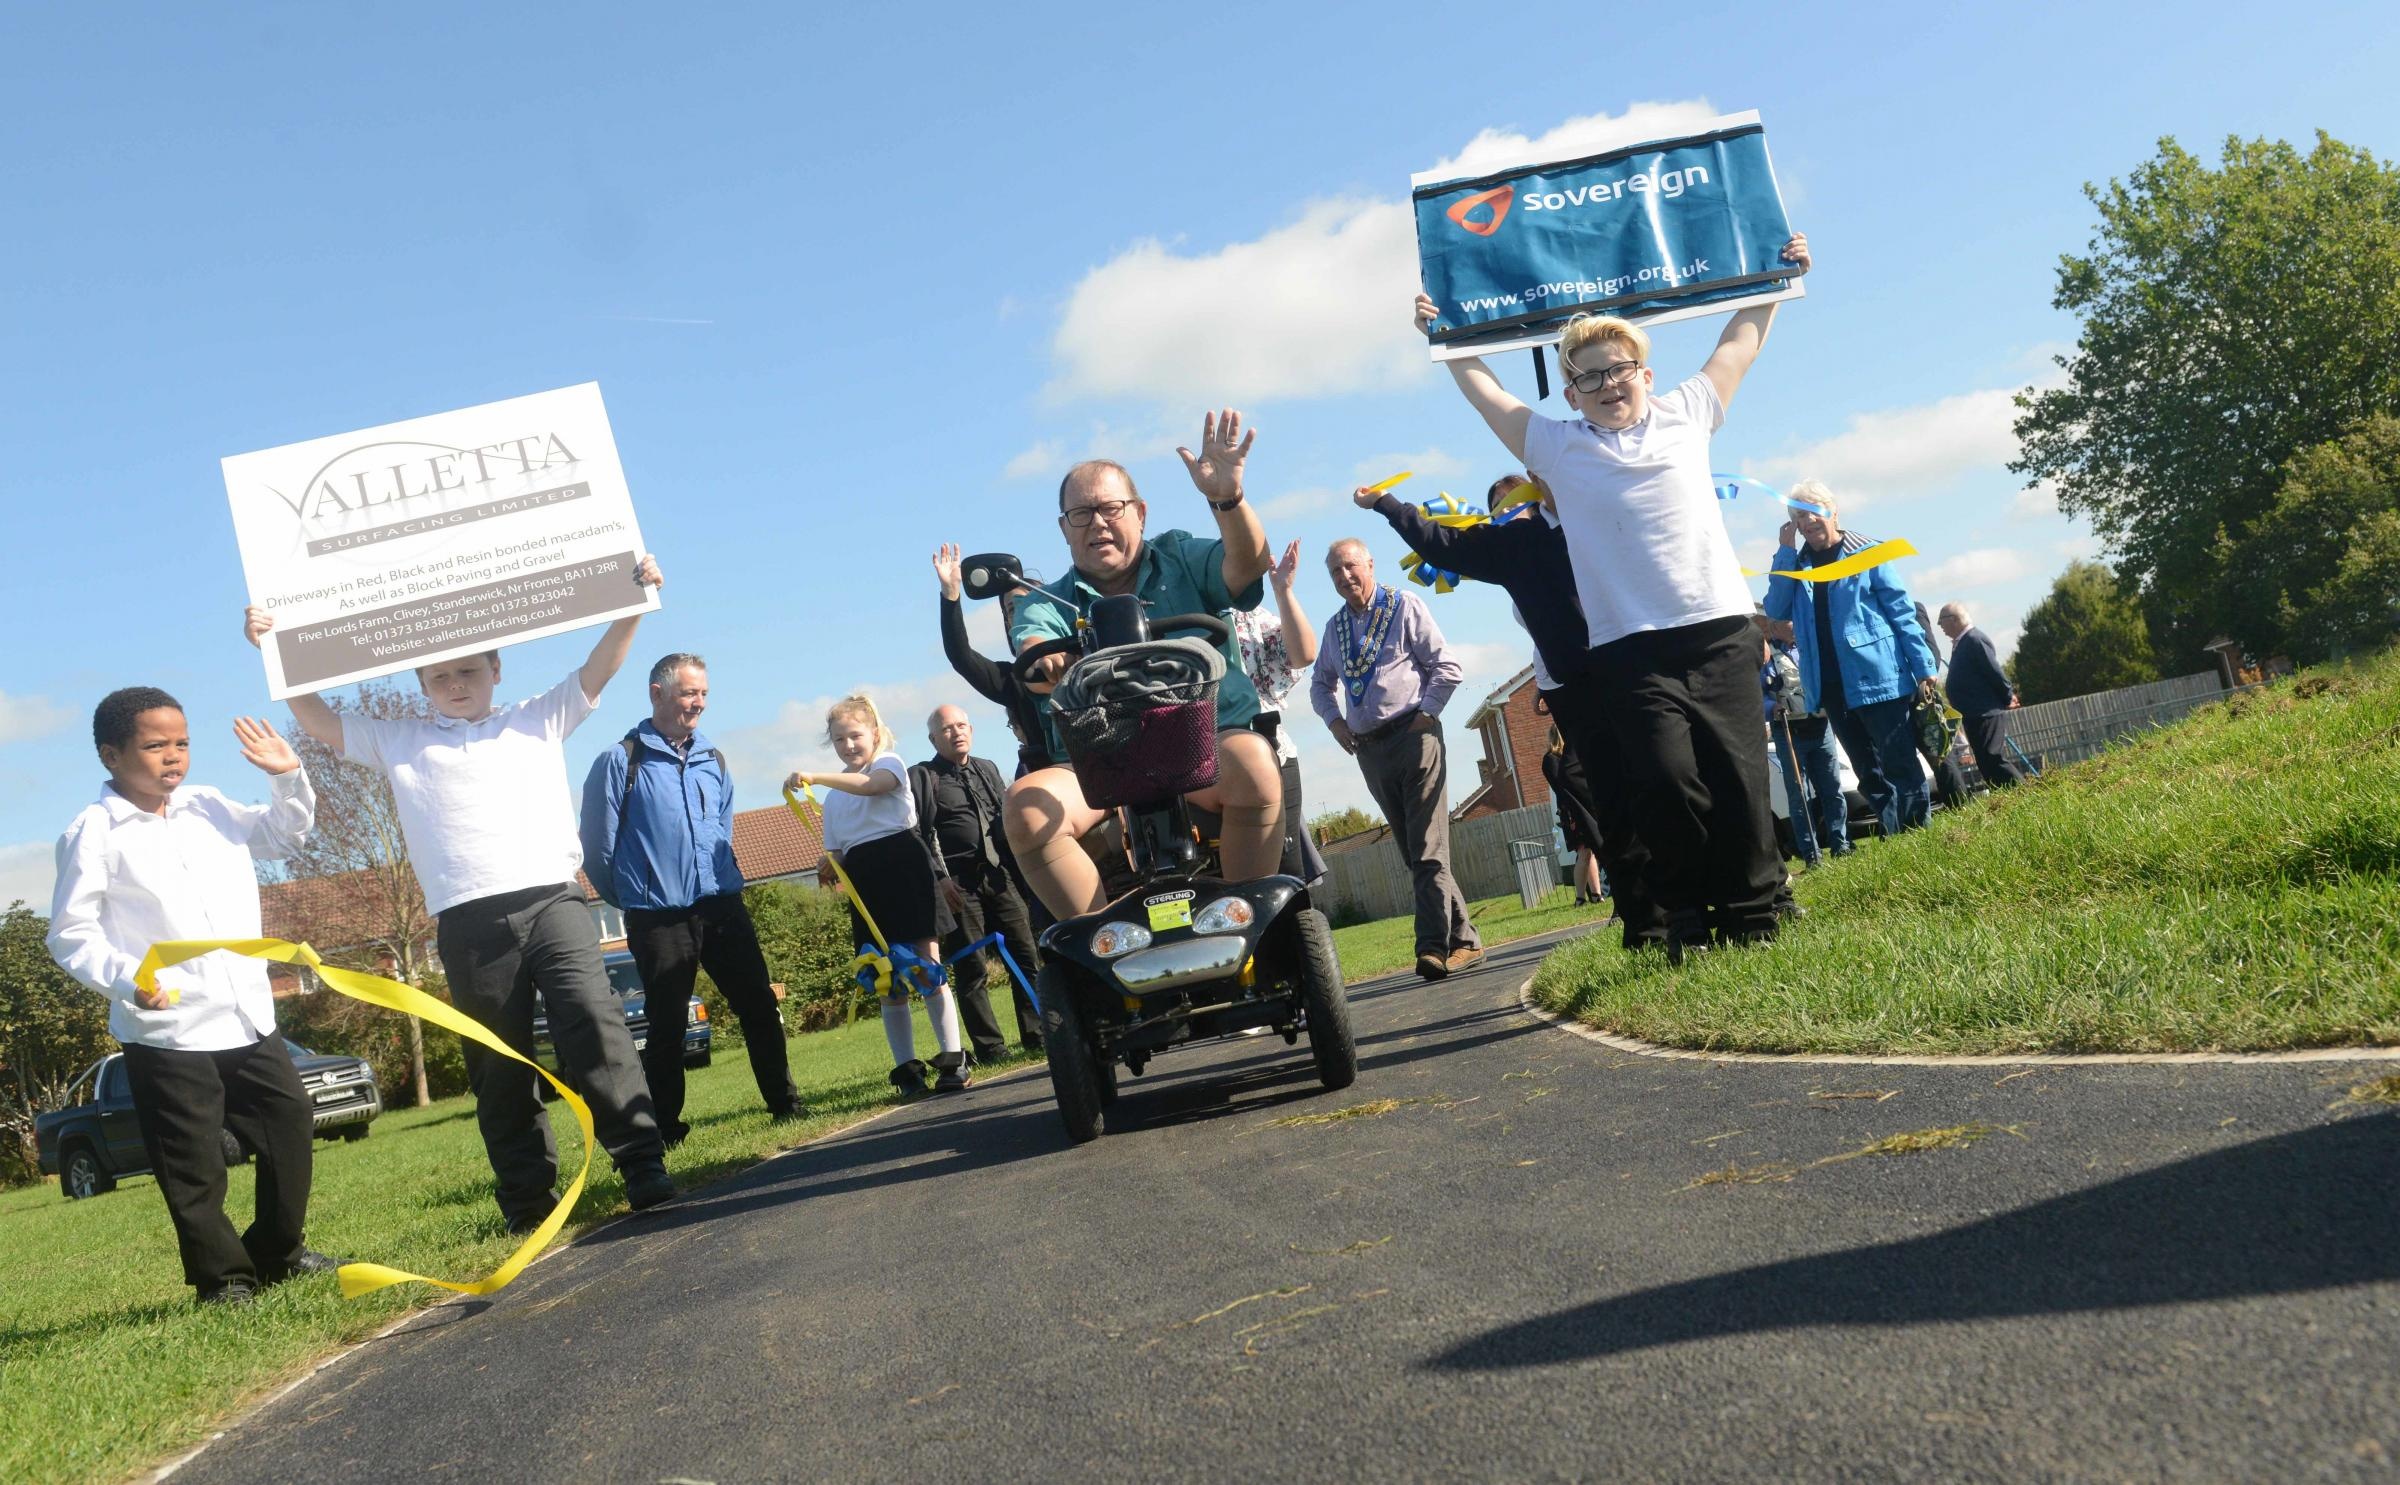 People power gets 'wobbly' path resurfaced